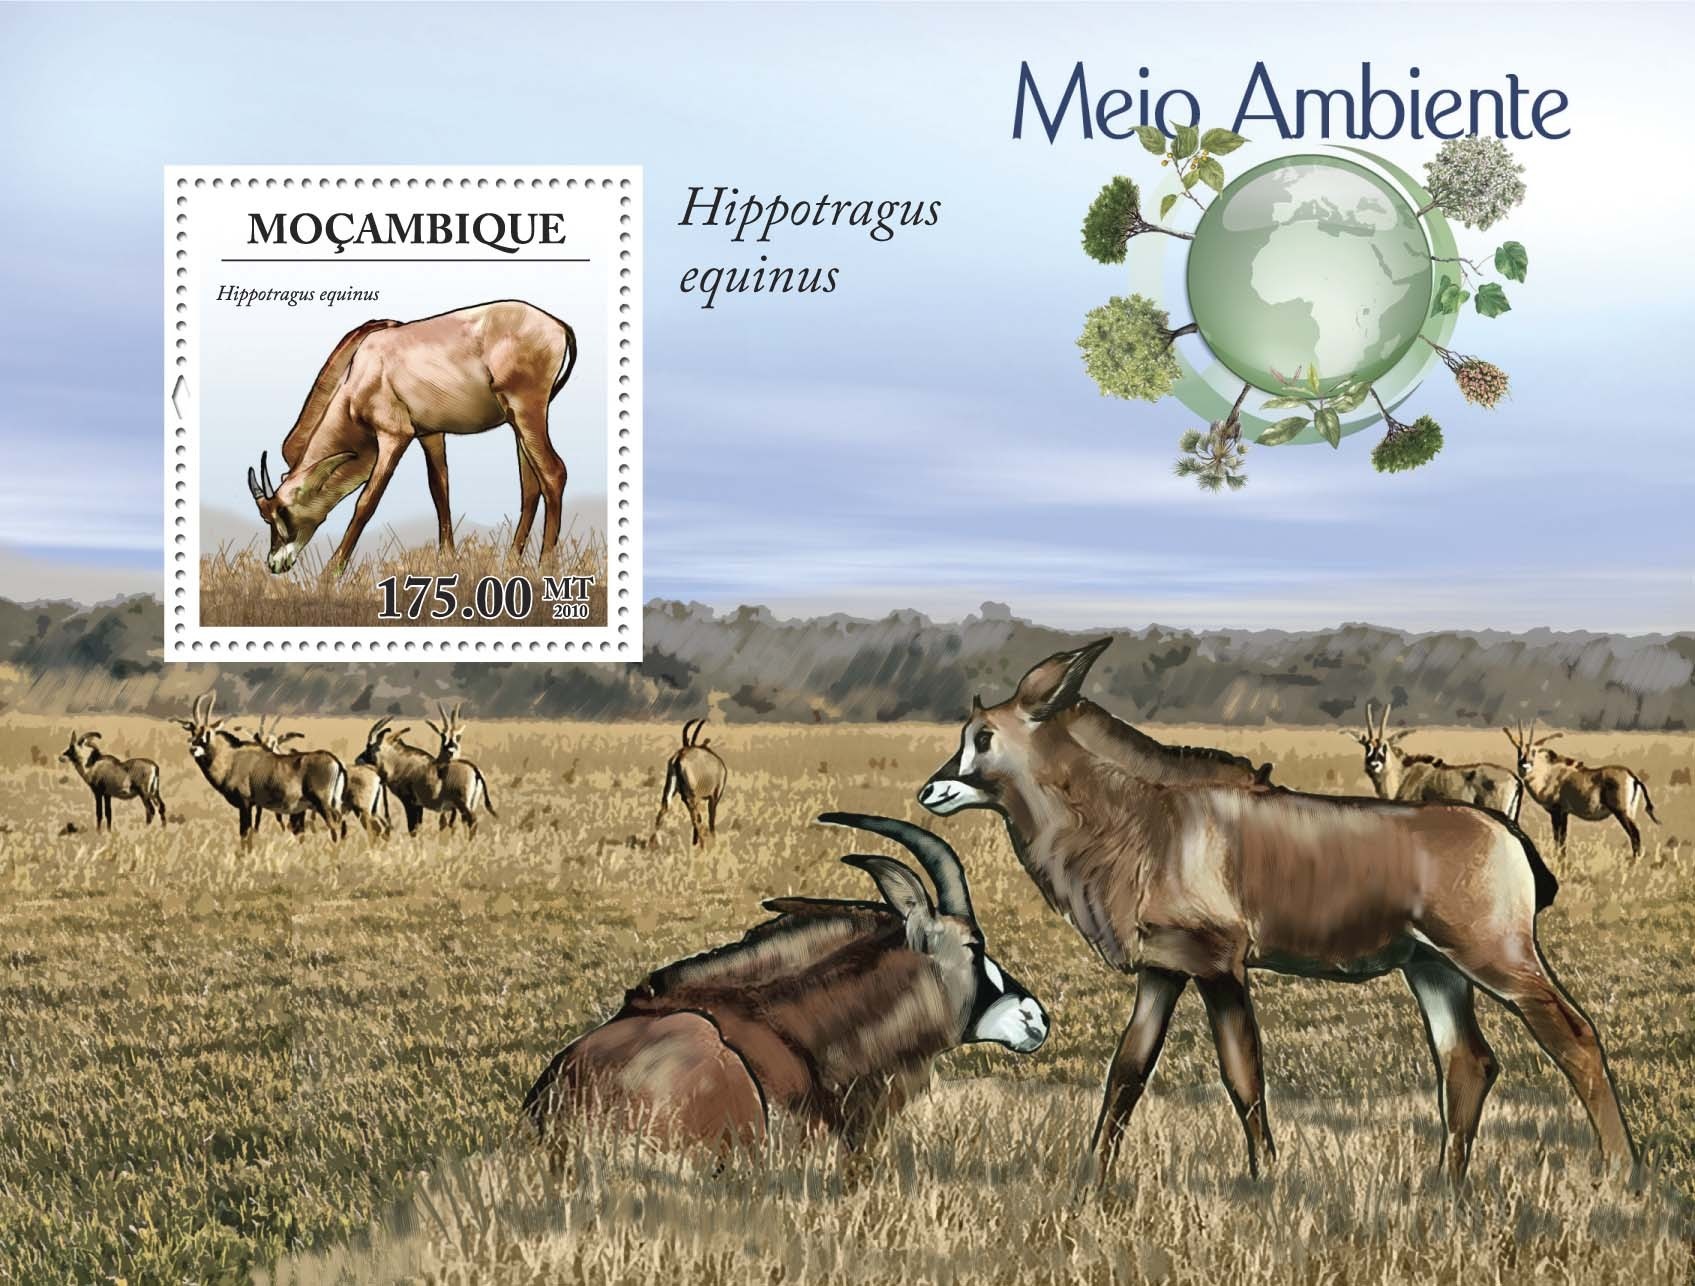 Antelope  Hippotragus equinus s-s - Issue of Mozambique postage Stamps